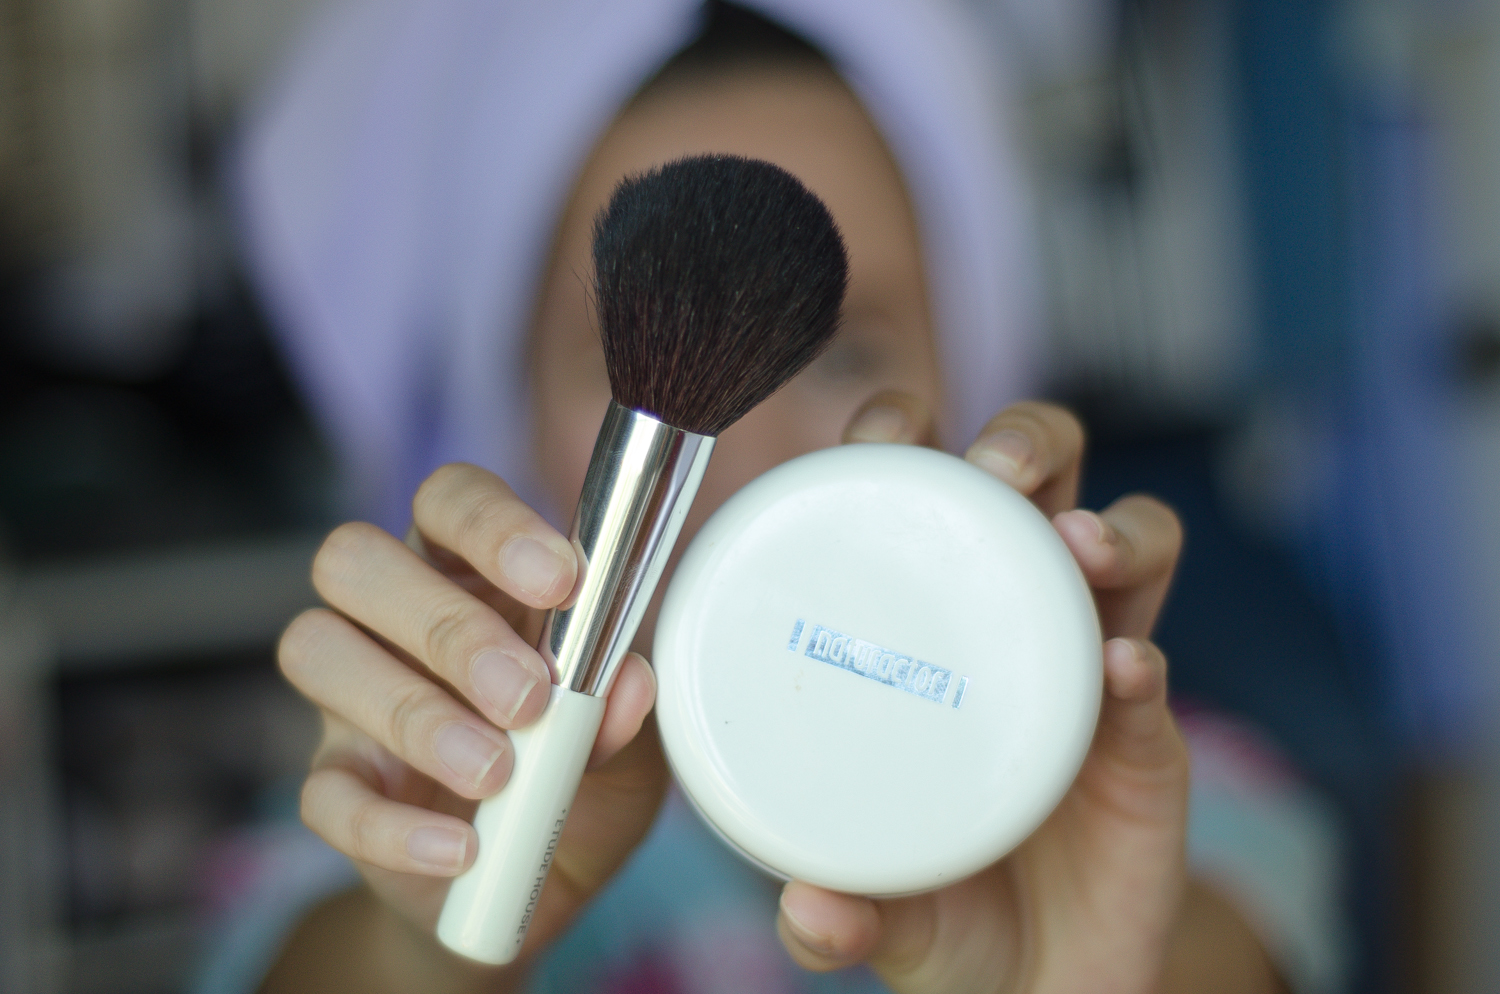 Beauty, Blog, Reviews, Beauty Reviews, Makeup Haul, How to Use Naturactor Cover Face Concealer, Silky Lucent Loose Powder, Philippine Beauty Blogger, Cebu Beauty Blogger, Makeup, Tutorial, Cebu Fashion Blogger, Cebu Blogger, Asian, Let's Stylize Cosmetics, Toni Pino-Oca, Miss Bella Brush, Tapered Kabuki Brush